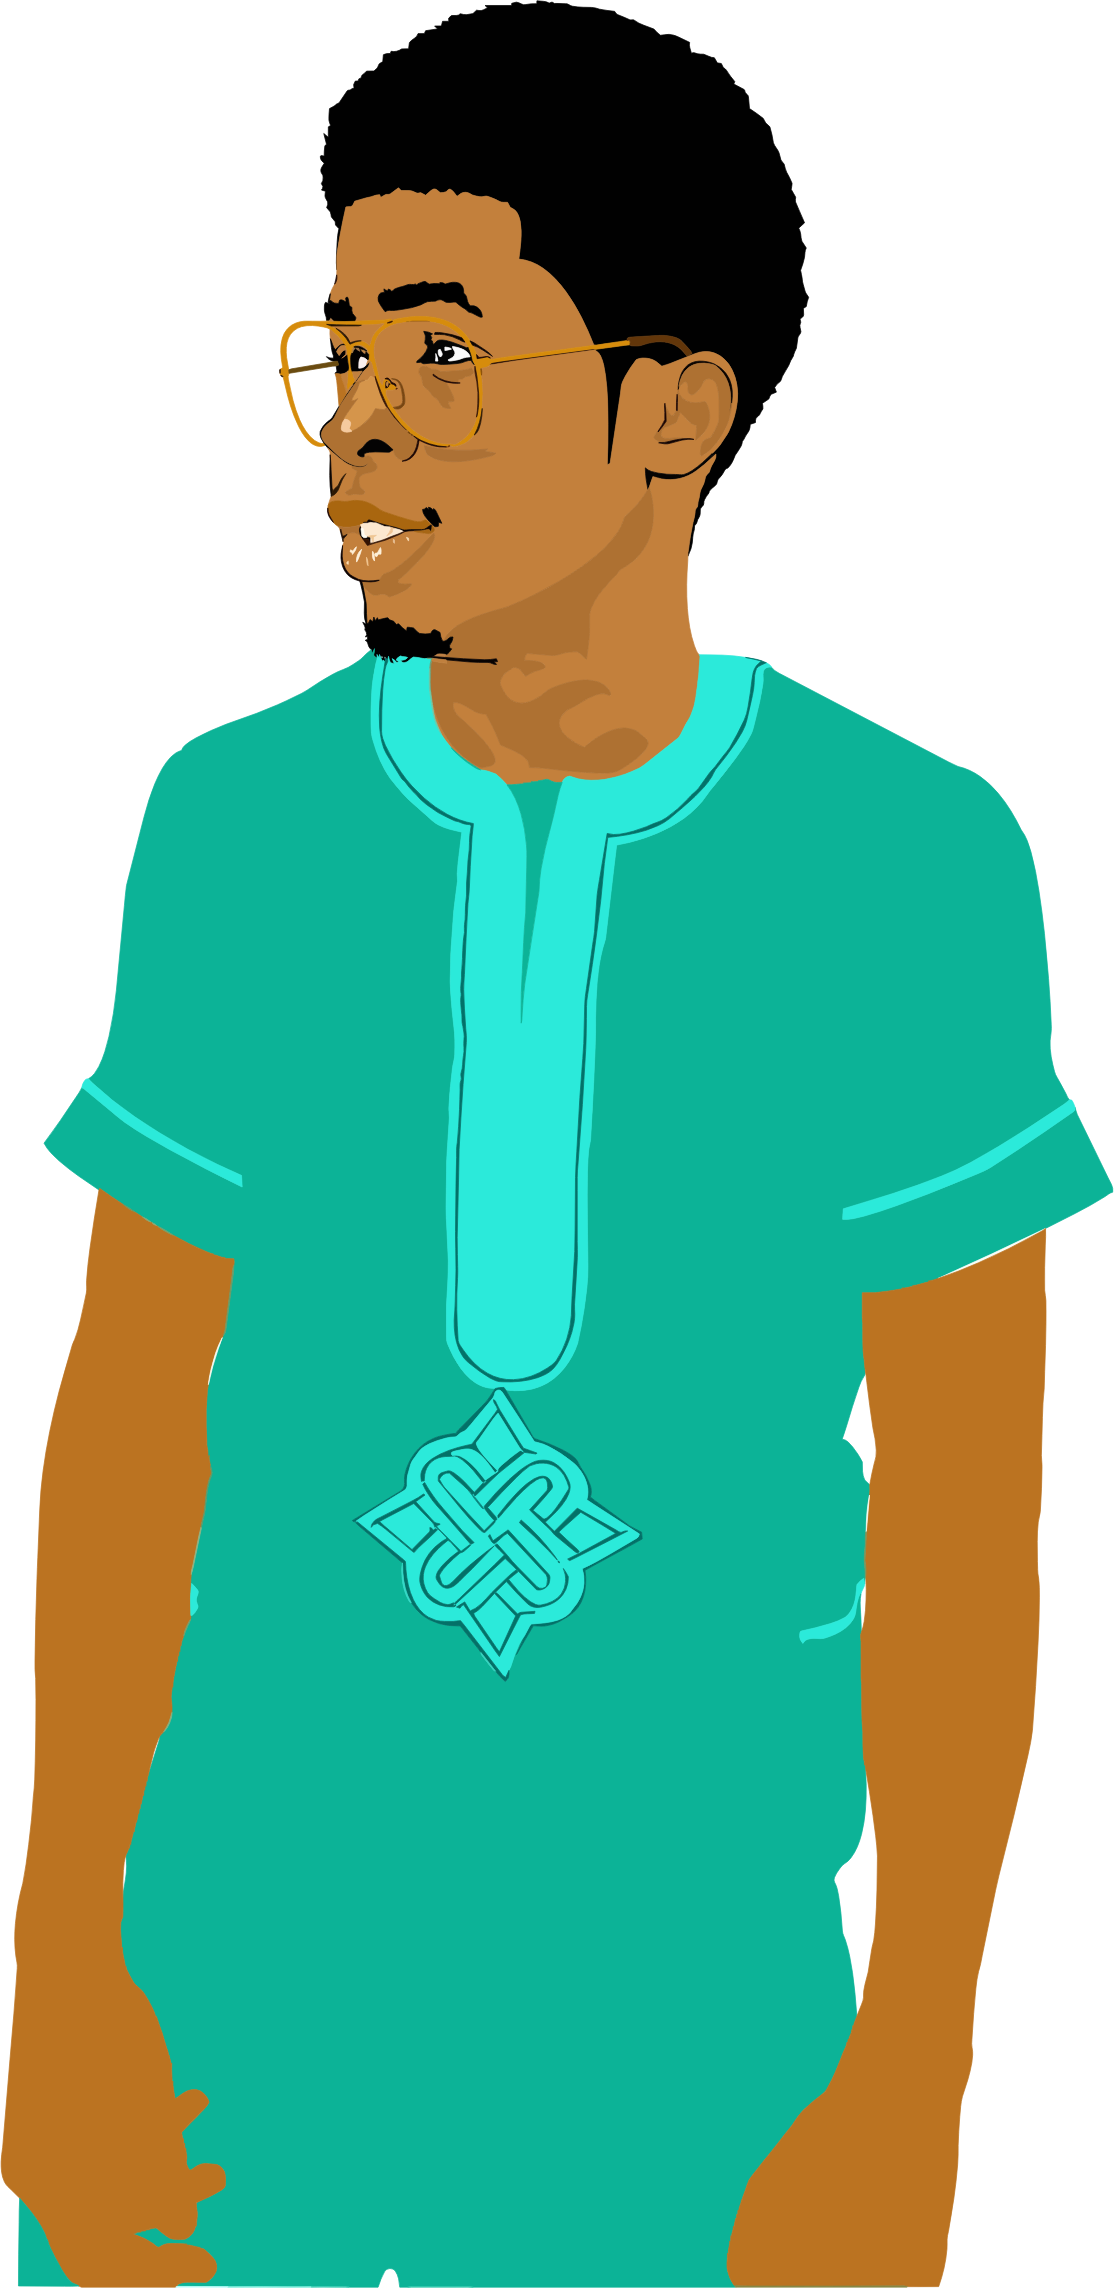 Black big image png. Young clipart man standing